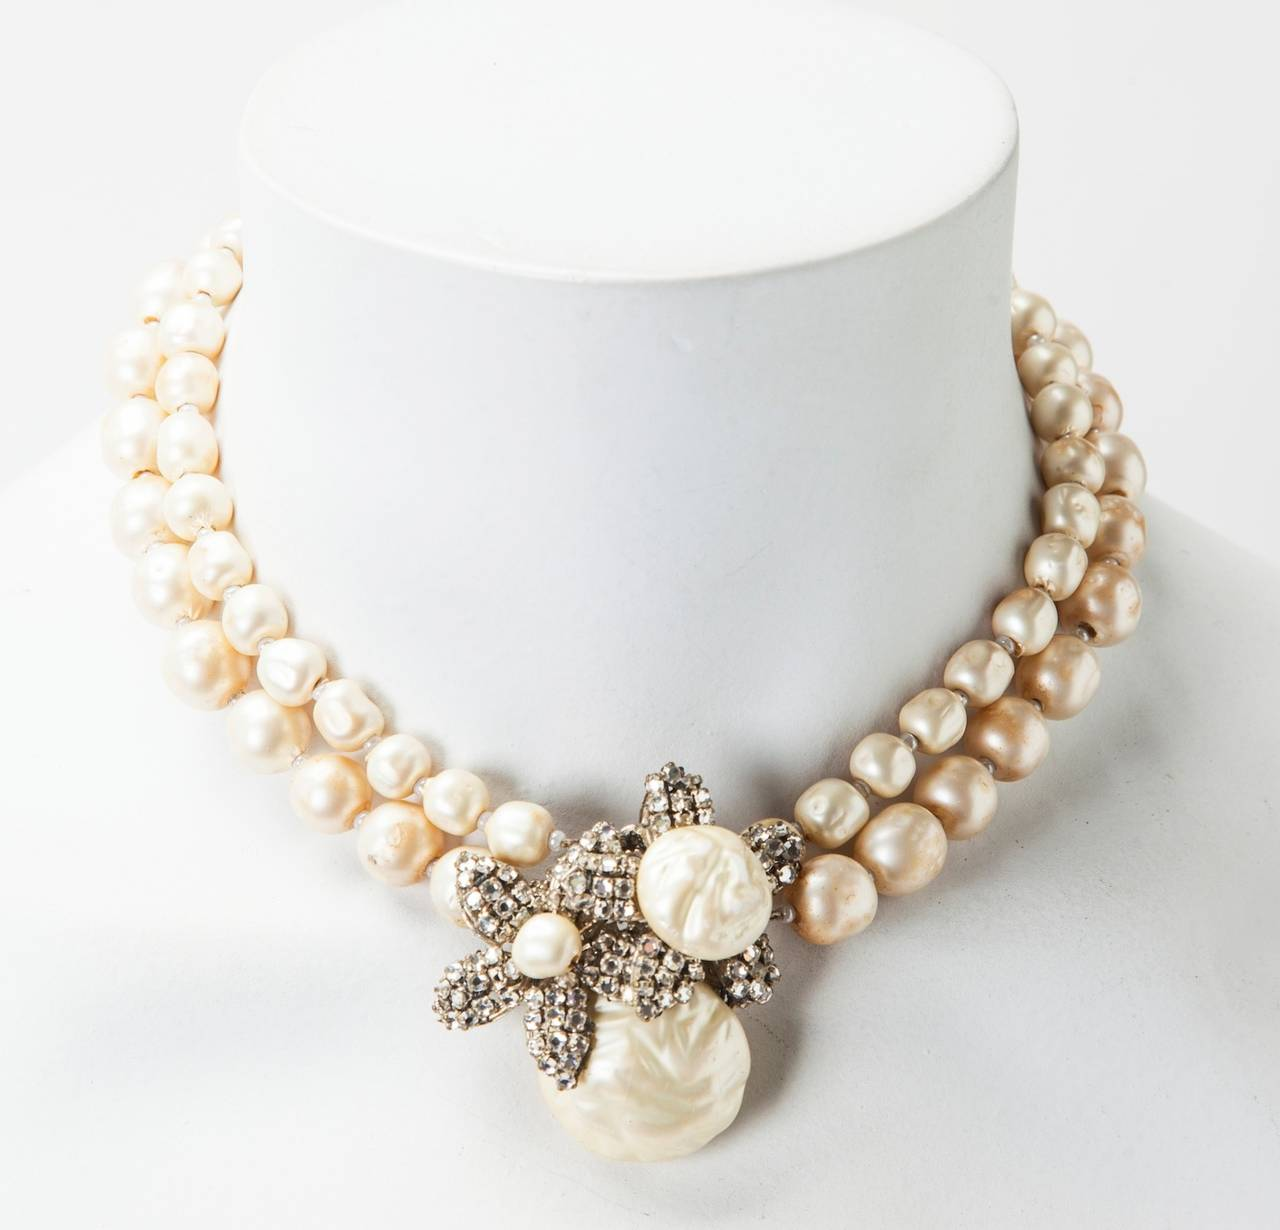 Women's Miriam Haskell Classic Freshwater Baroque Pearl Necklace For Sale